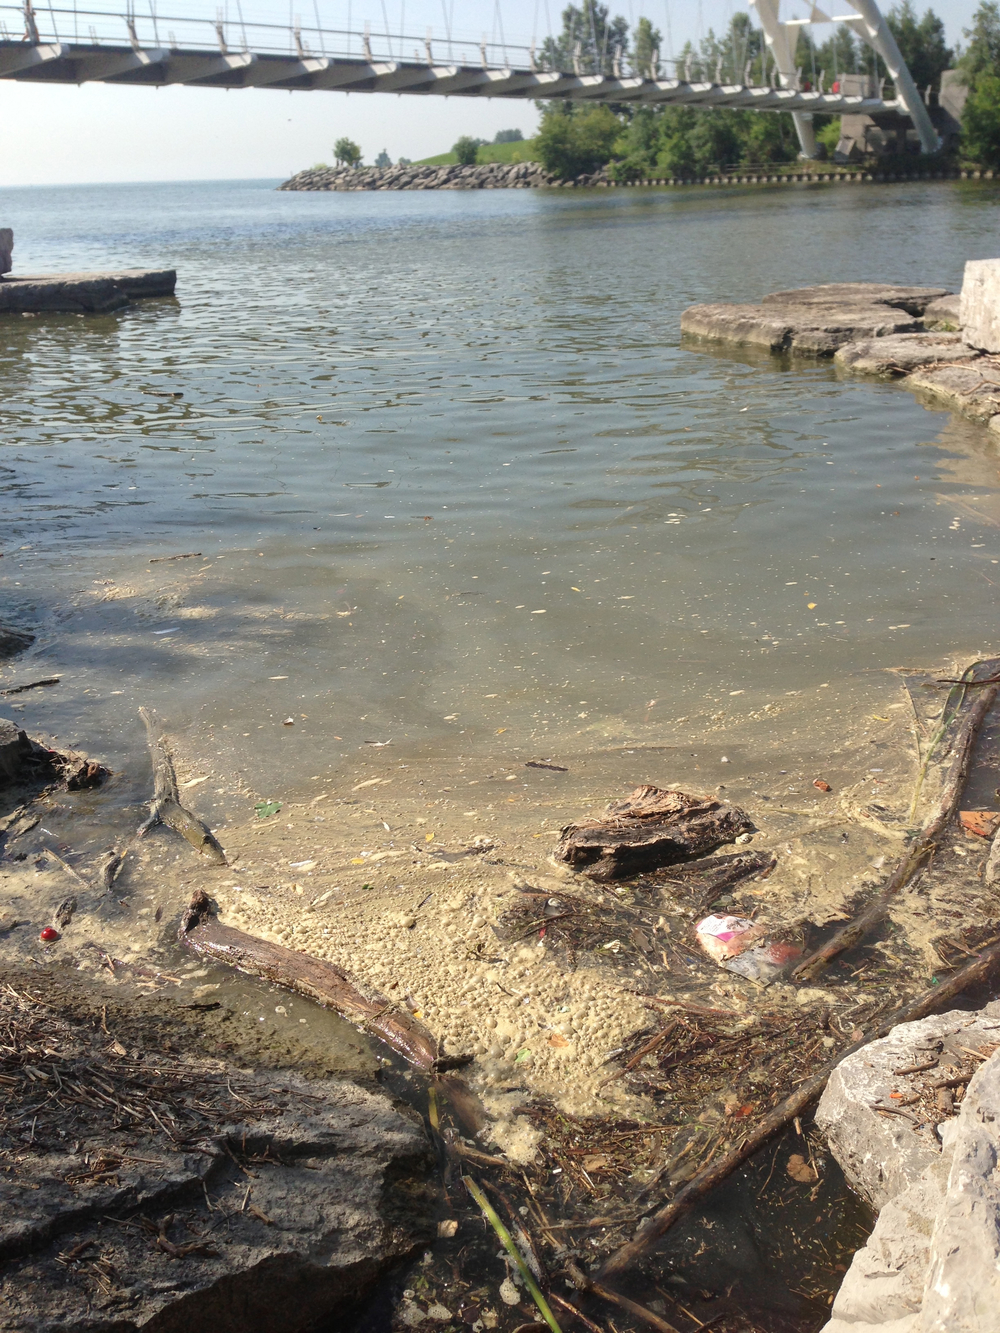 Sludge covers the shoreline of the Humber River one week after the 2013 storm. Photo by Krystyn Tully.